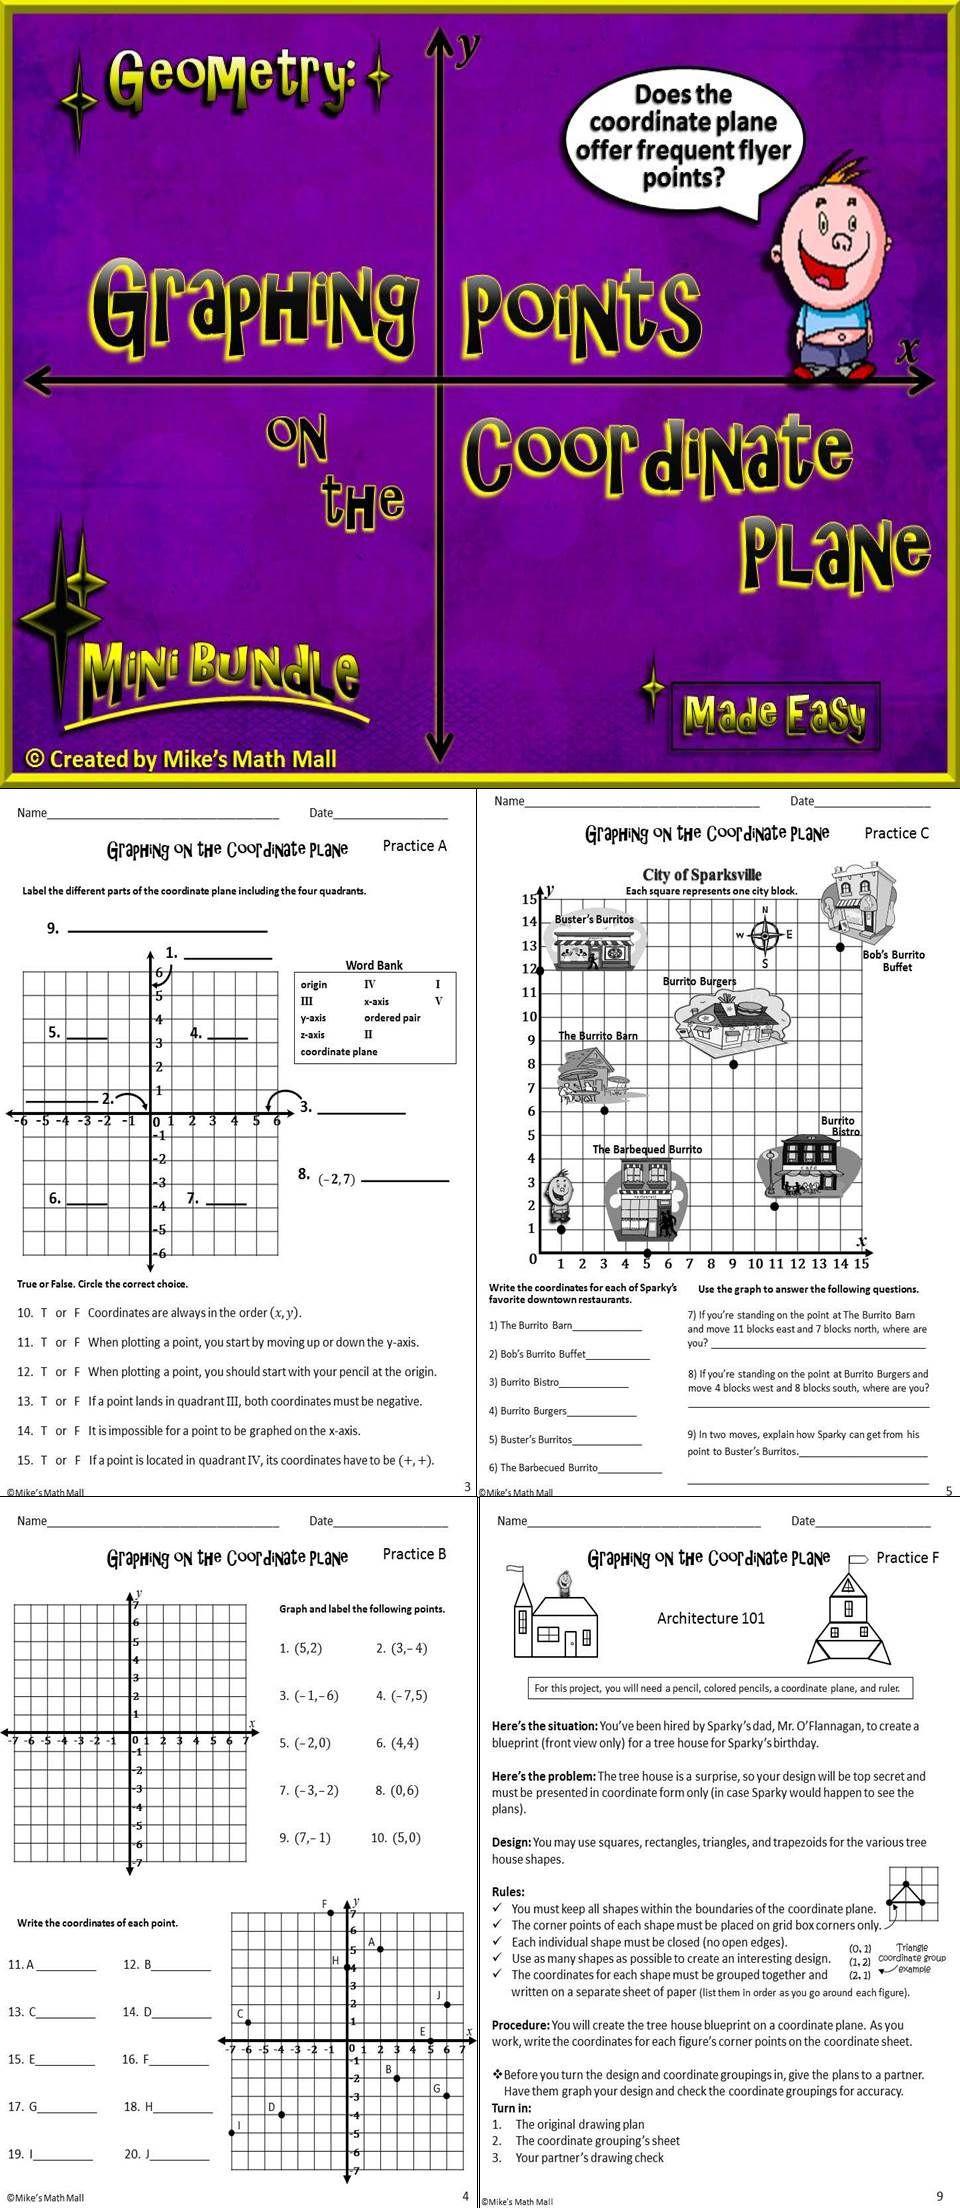 Coordinate Plane Worksheet 5th Grade Graph Points On the Coordinate Plane Mini Bundle